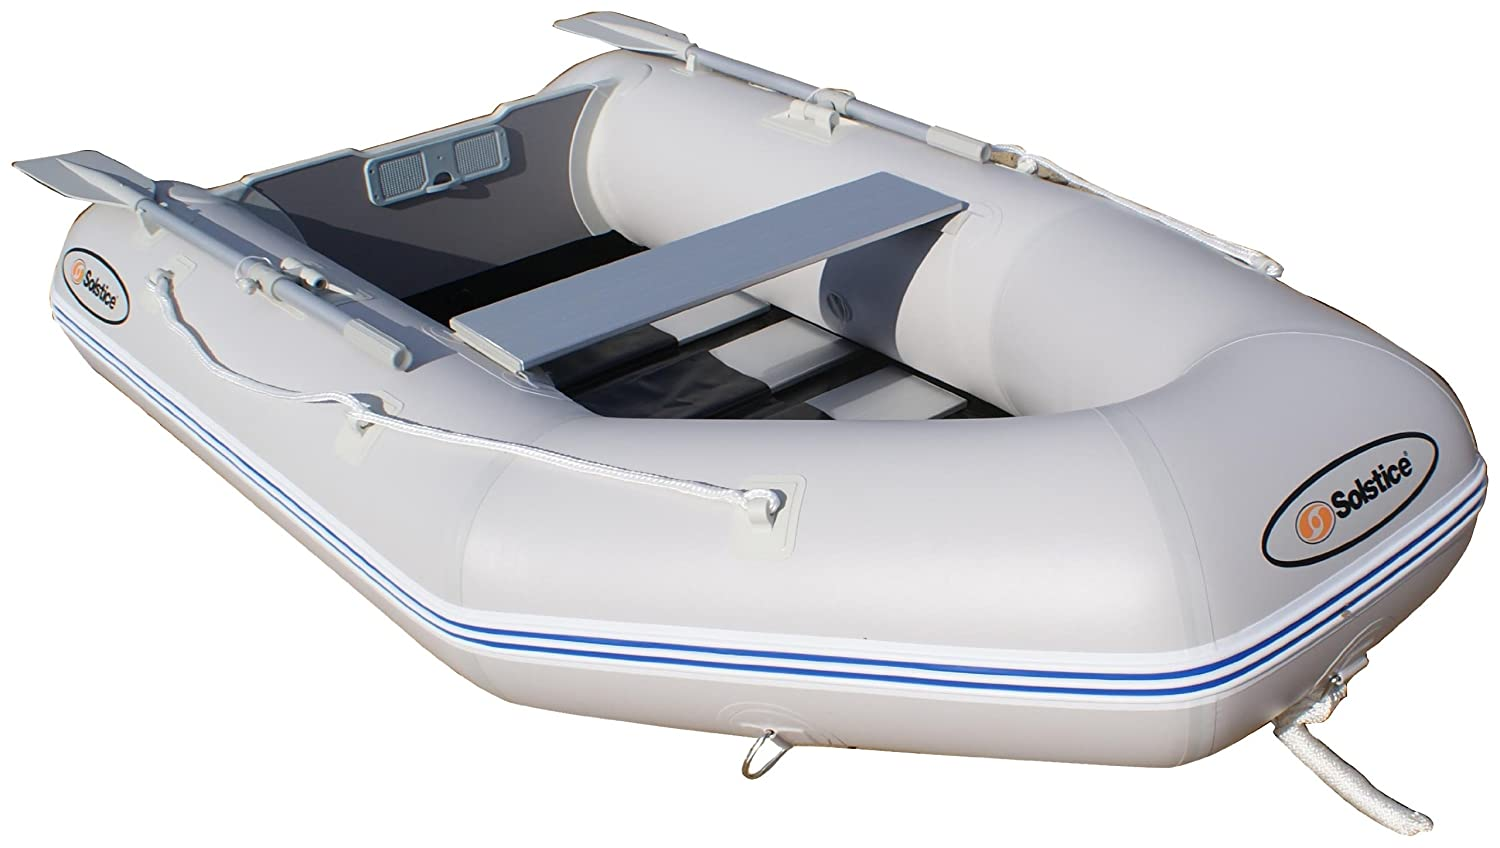 Which PVC boat is better 79